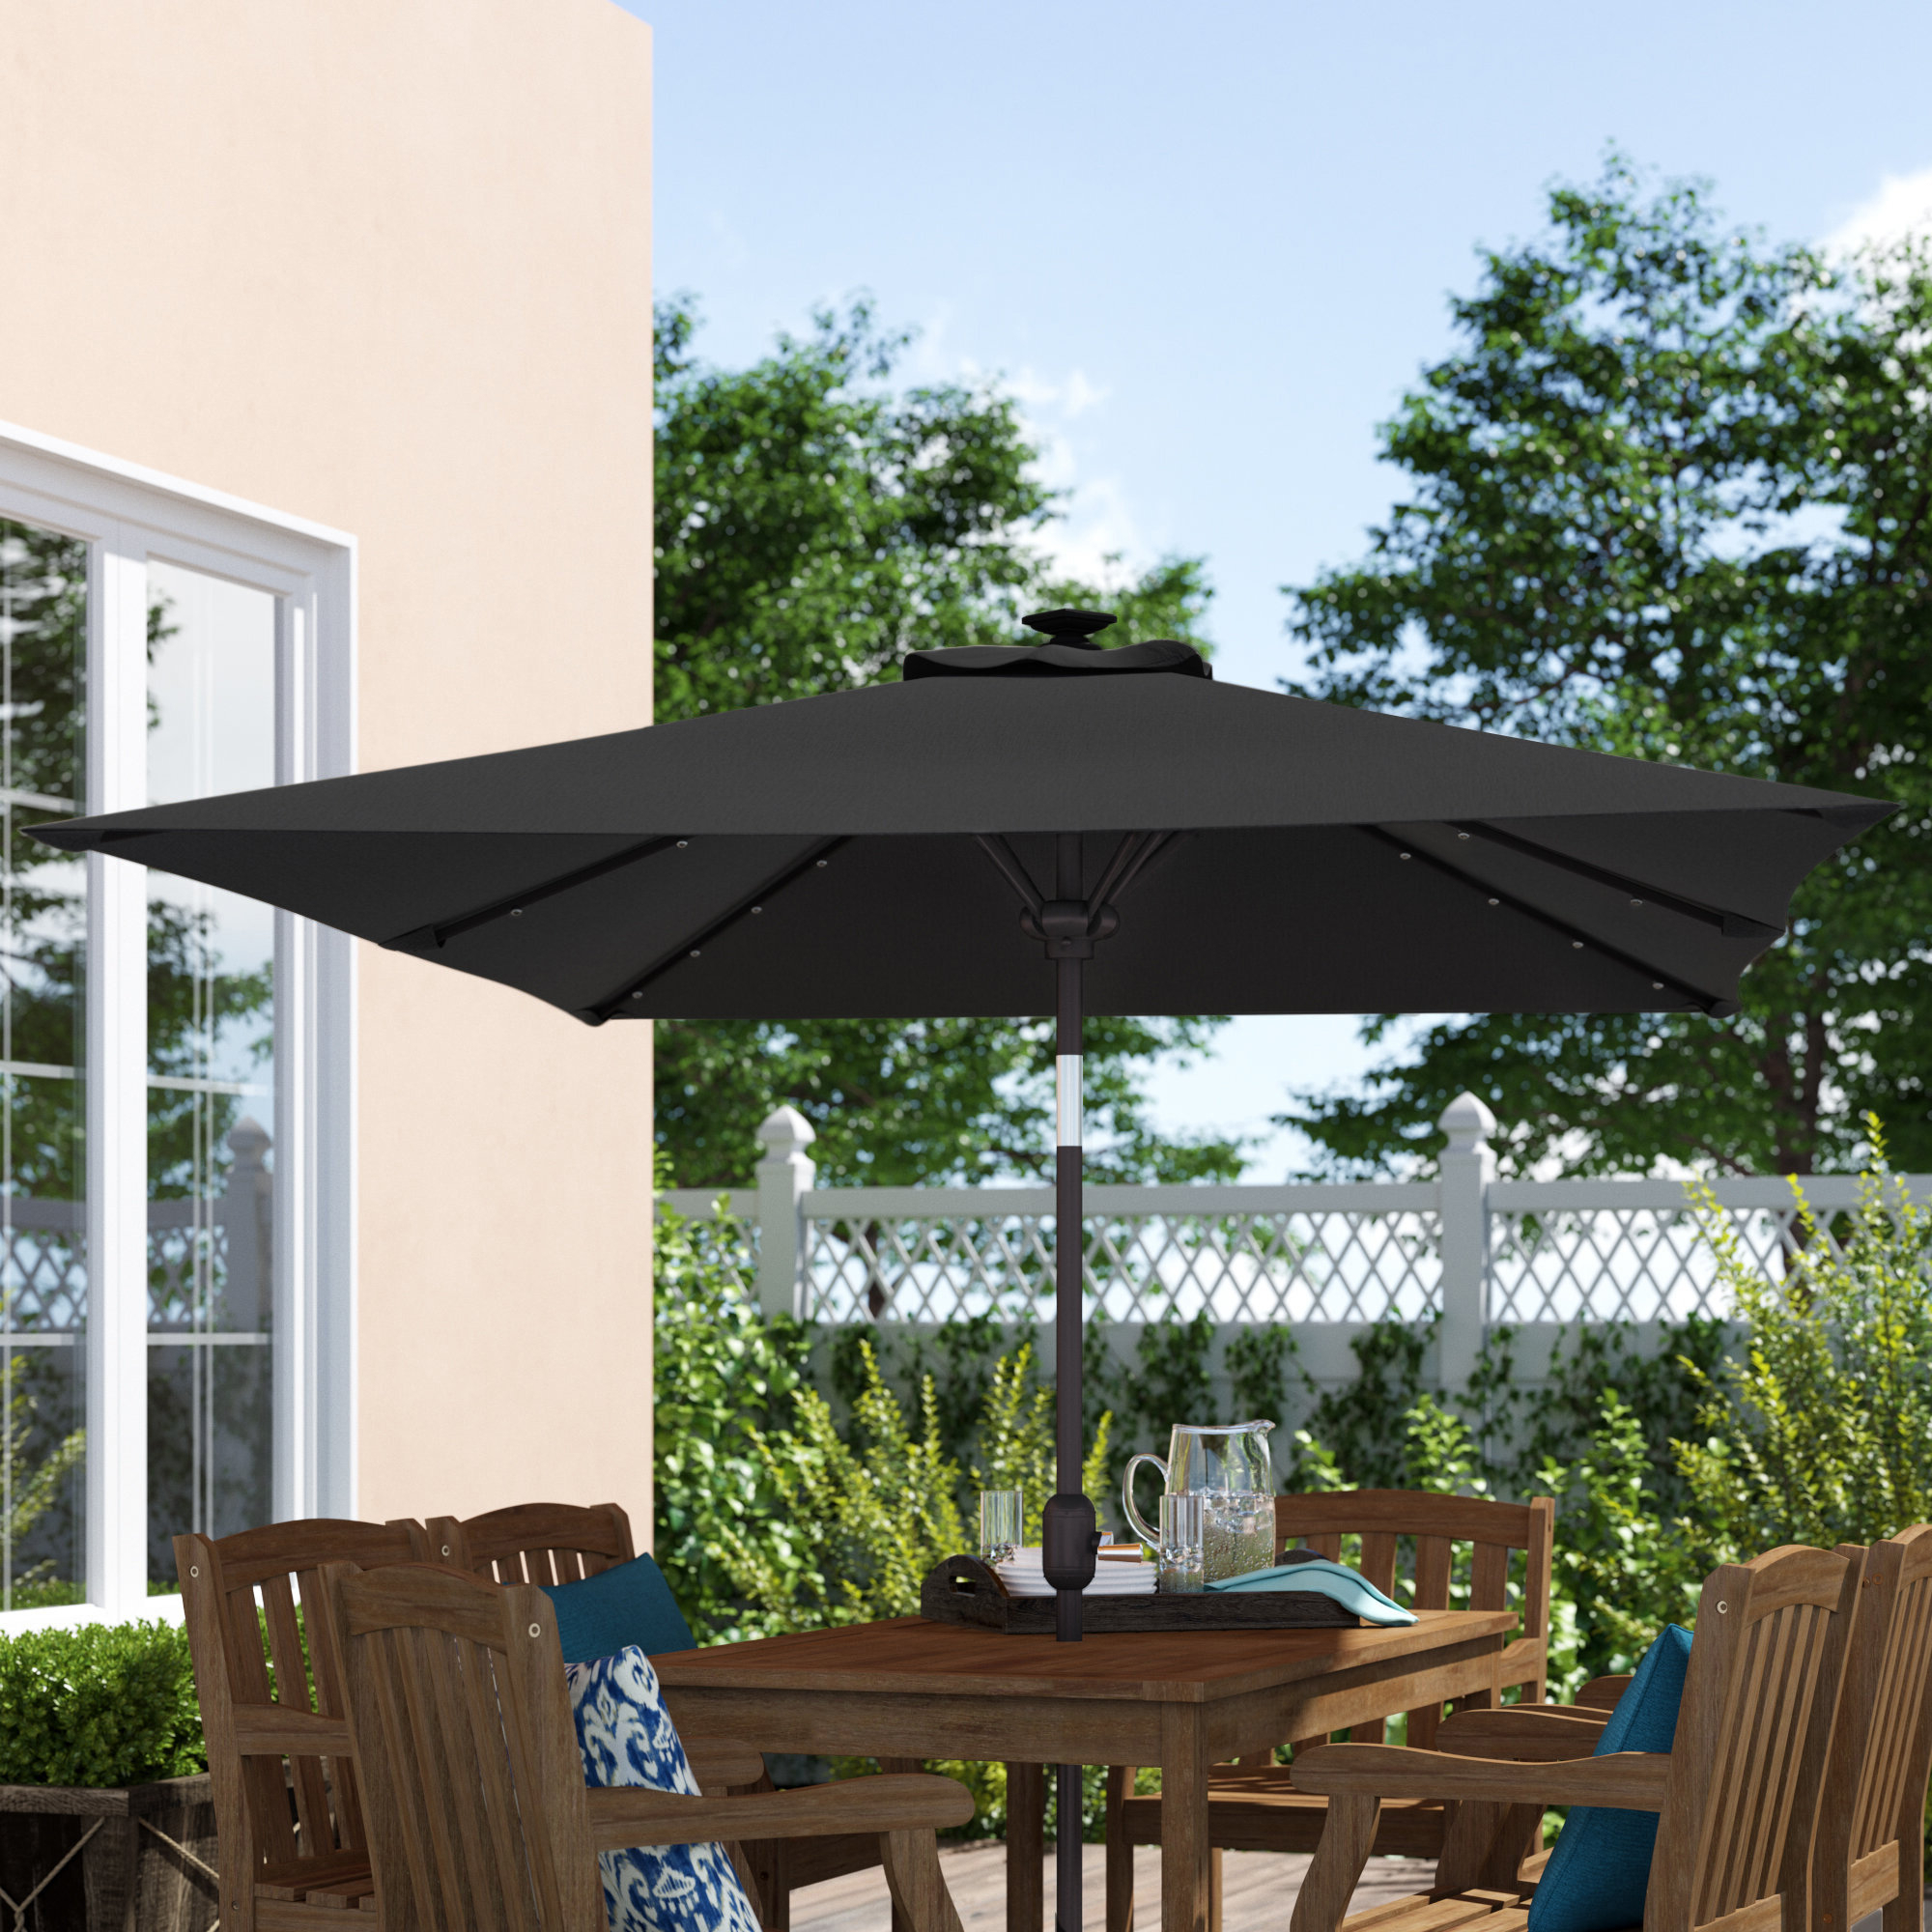 "Well Known Eliana Solar Lighted Sunshade Tilt Crank 10' X 6'6"" Rectangular Market Umbrella Pertaining To Sherlyn Rectangular Market Umbrellas (View 19 of 20)"